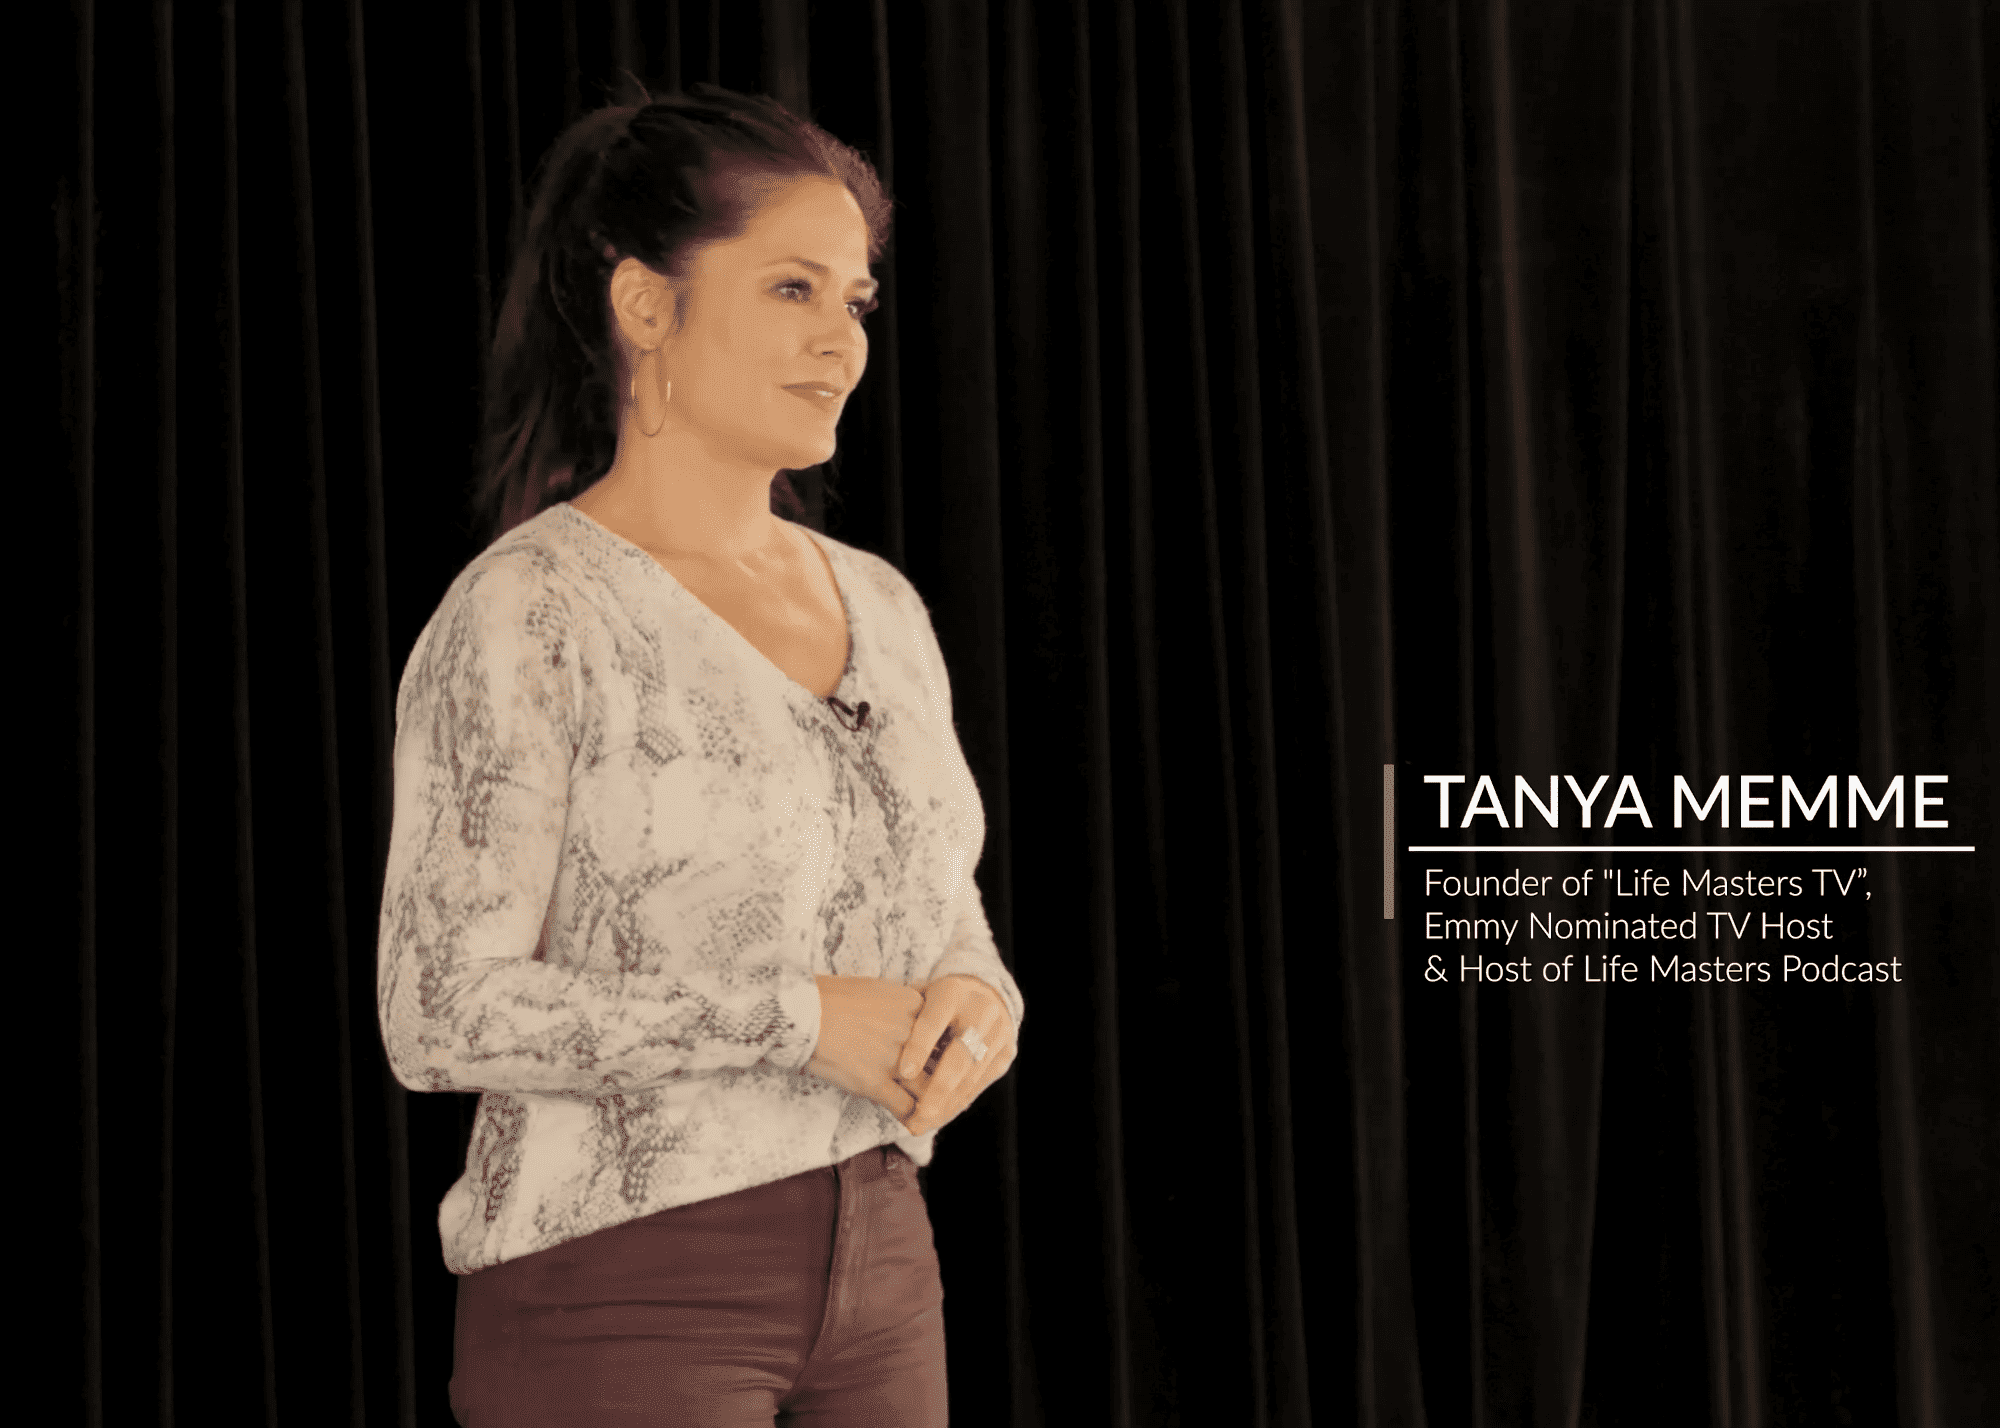 Tanya title screen for GTR page Screen Shot 2020-05-30 at 12.57.50 PM